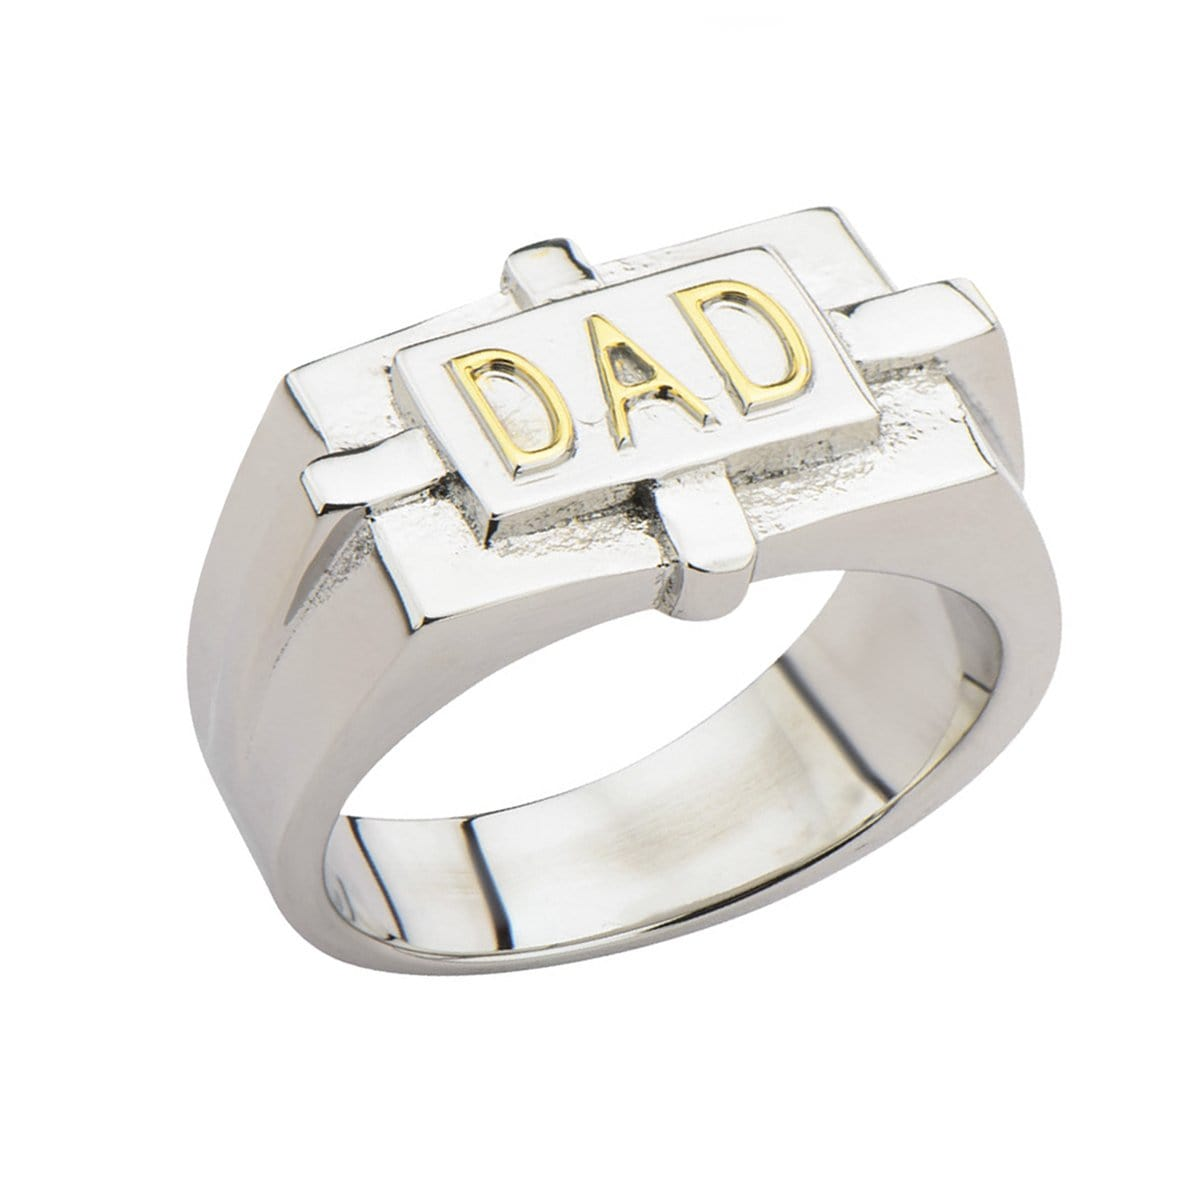 Gold & Silver Stainless Steel DAD Engraved Ring Rings